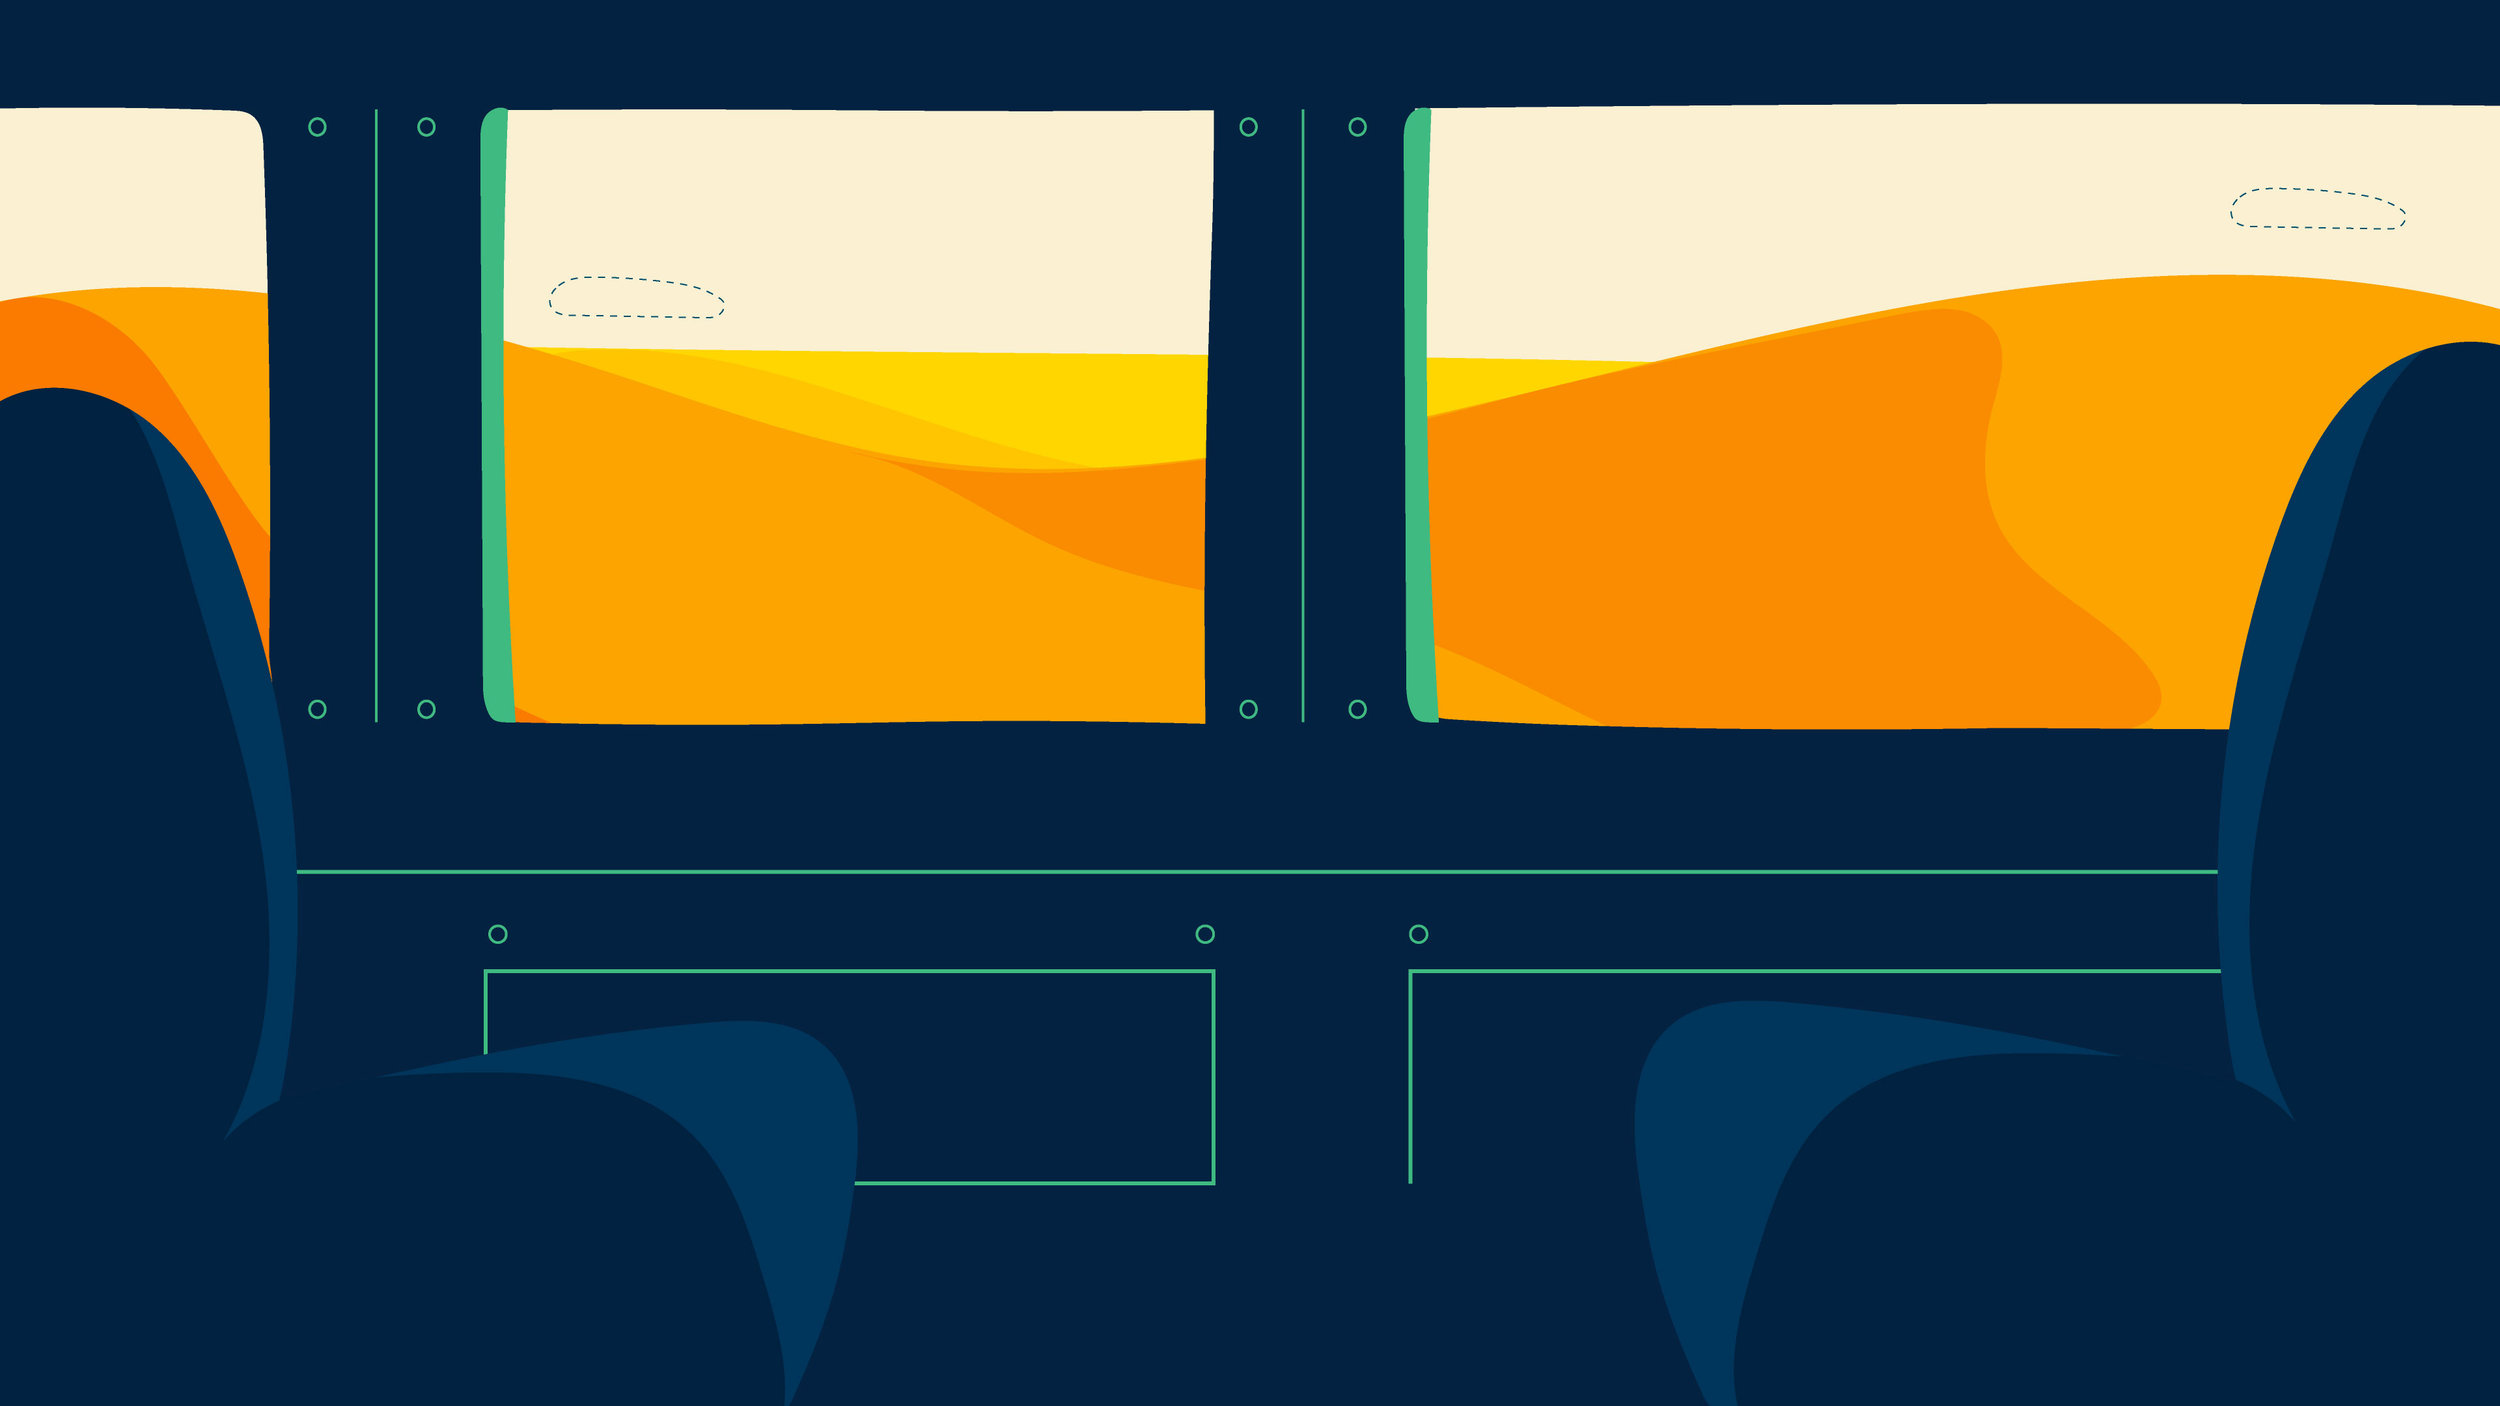 Styleframes-Train-Closeup-v3.jpg